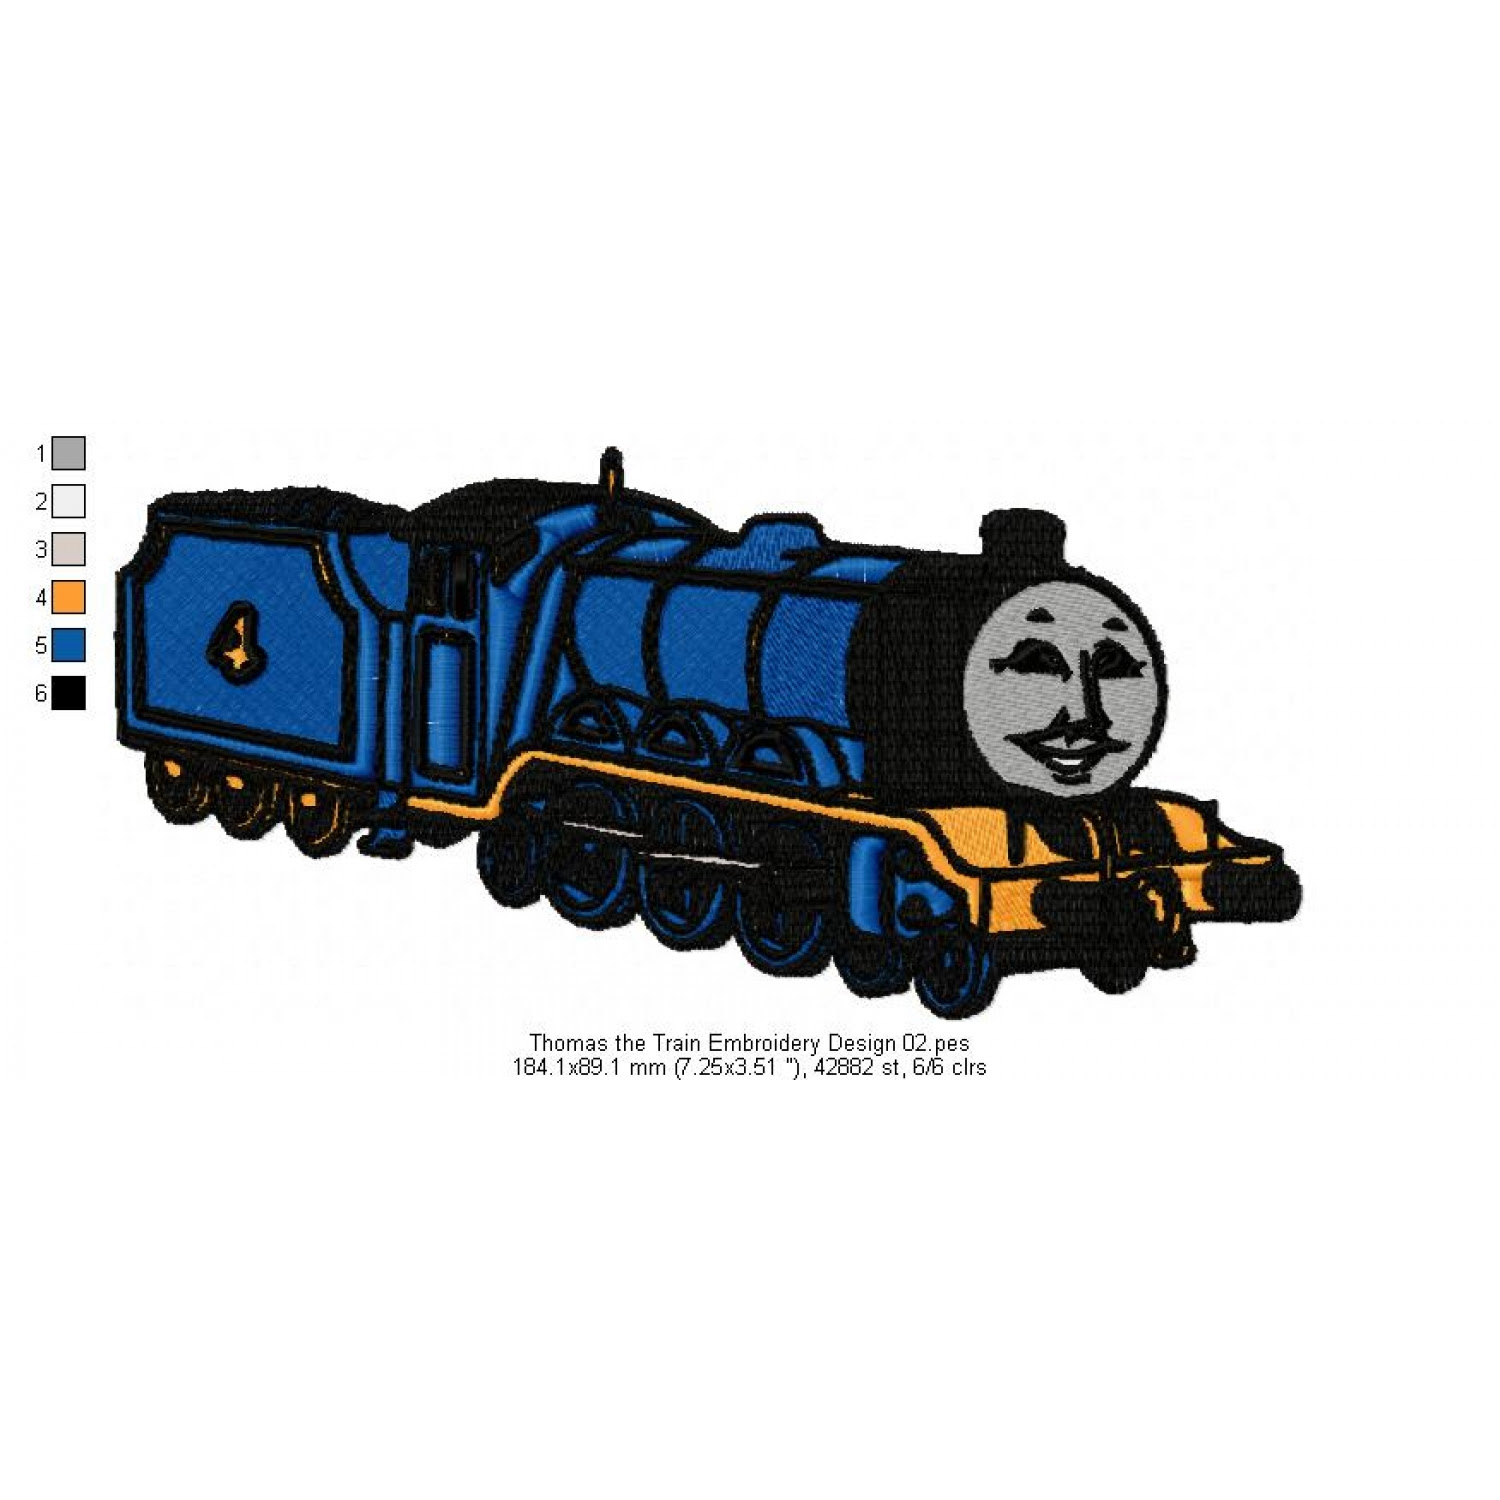 Thomas The Train Embroidery Design 02